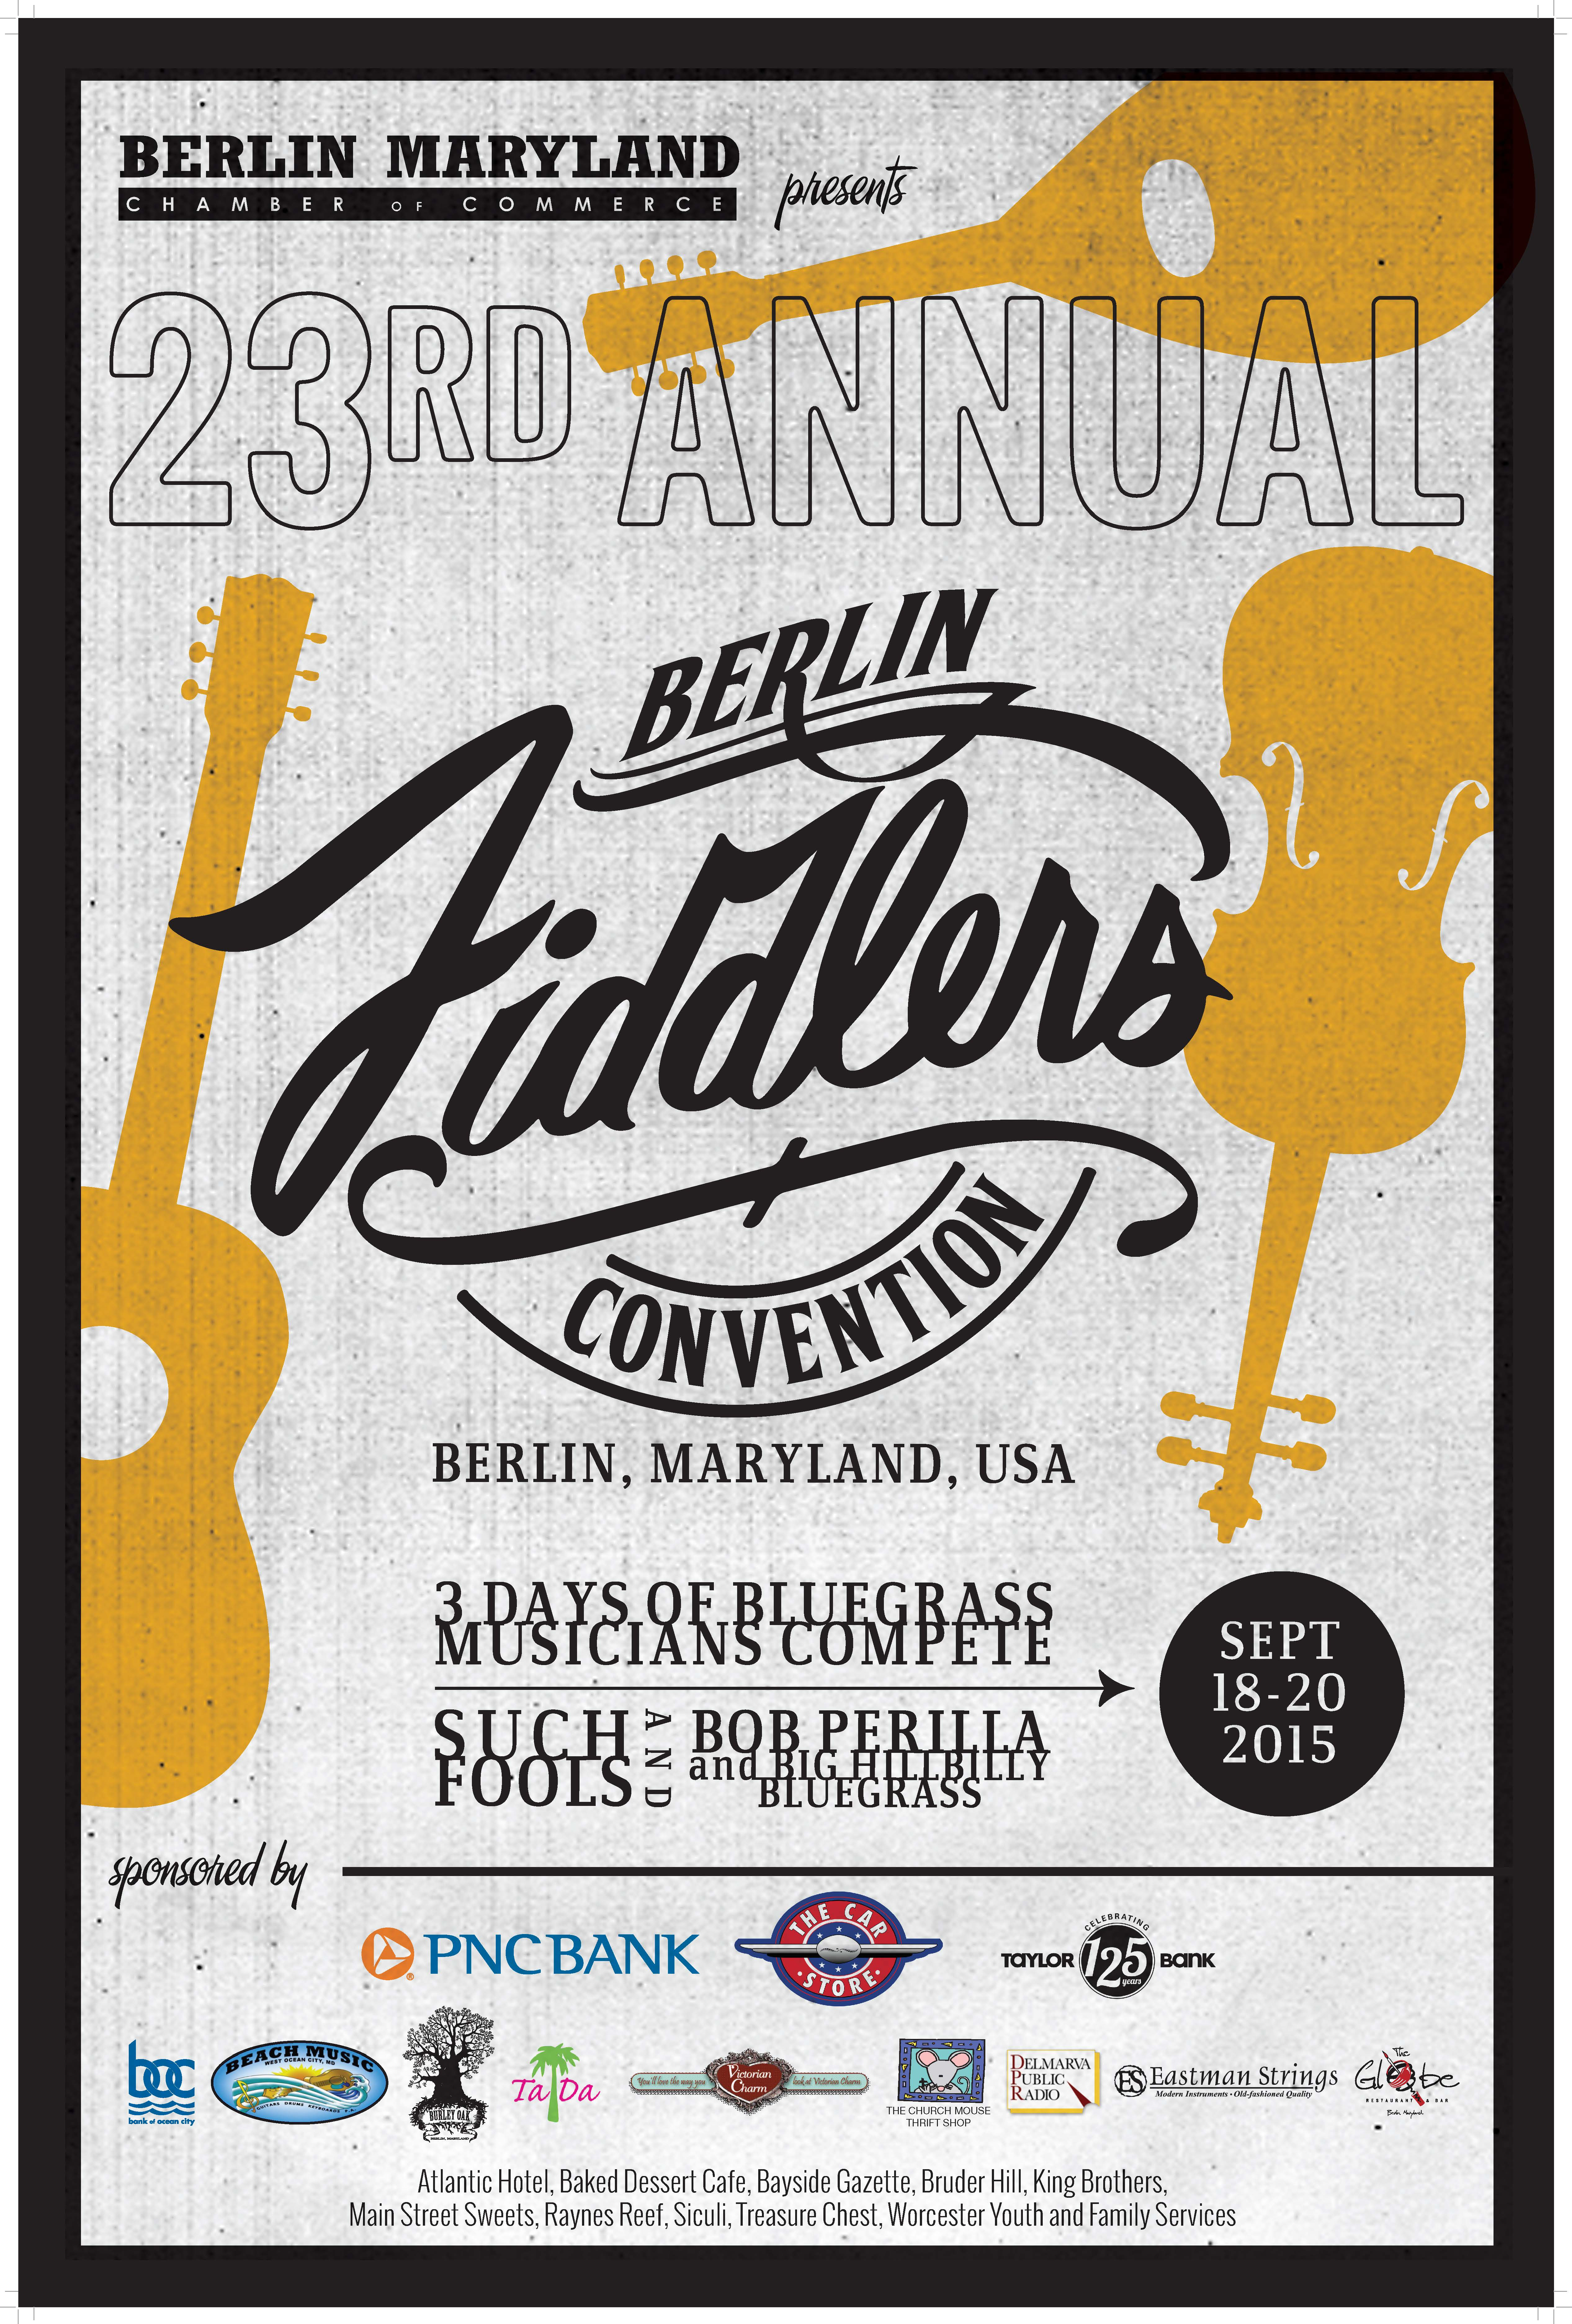 Berlin Fiddlers Convention 2015